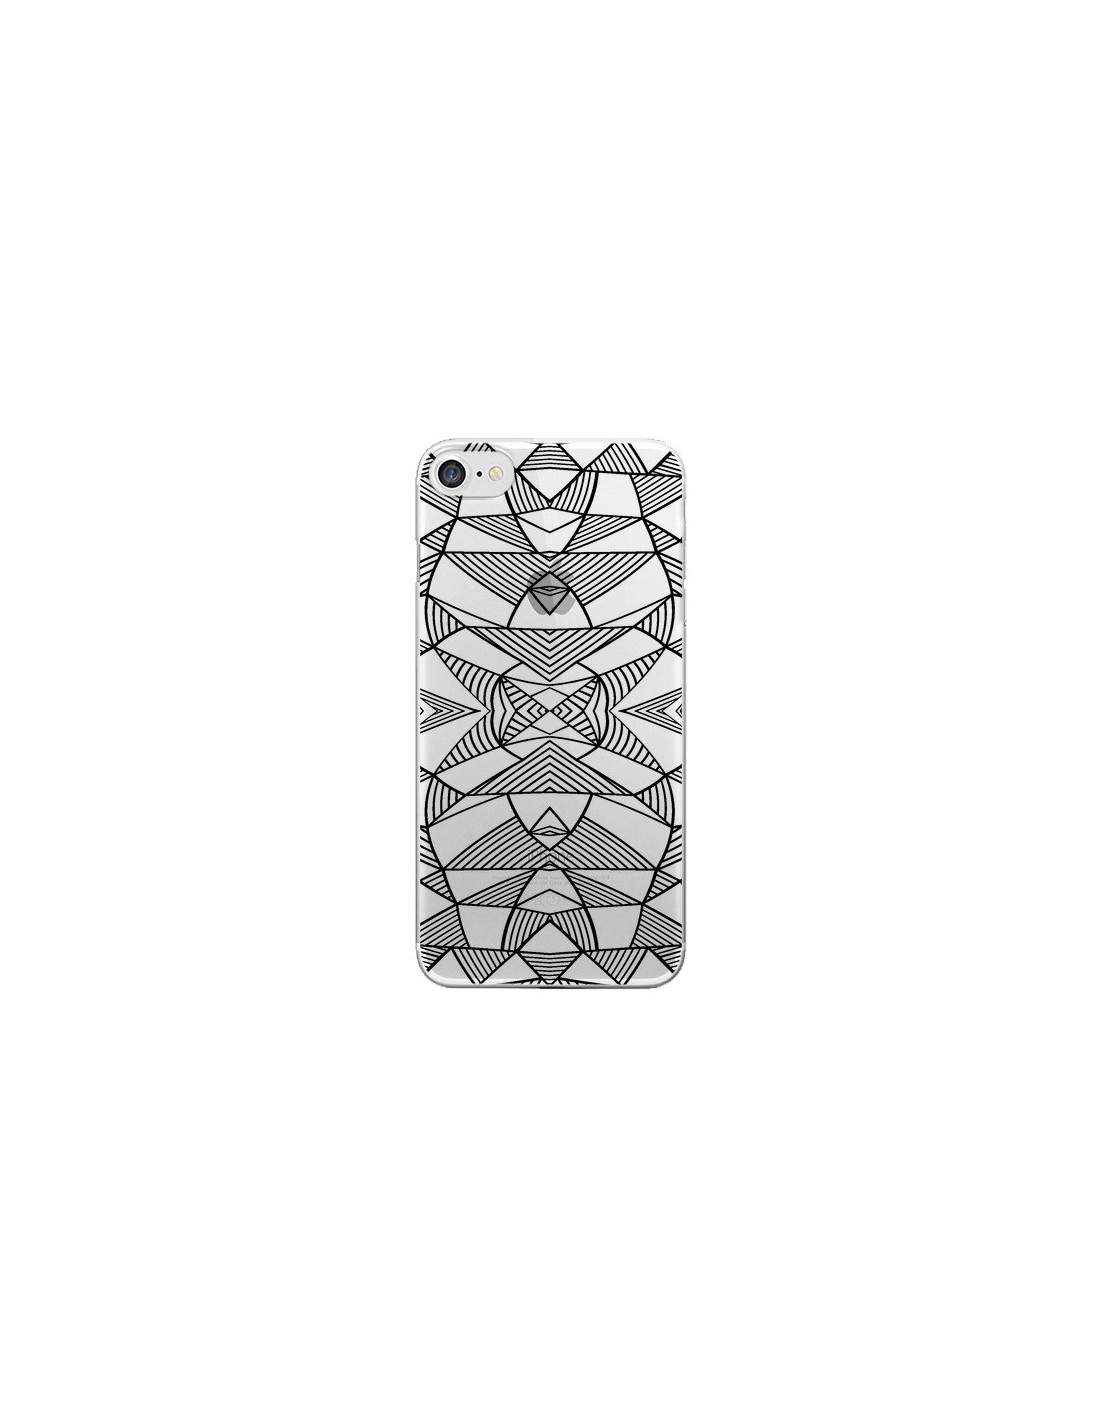 Coque lignes miroir grilles triangles grid abstract noir for Miroir yohan